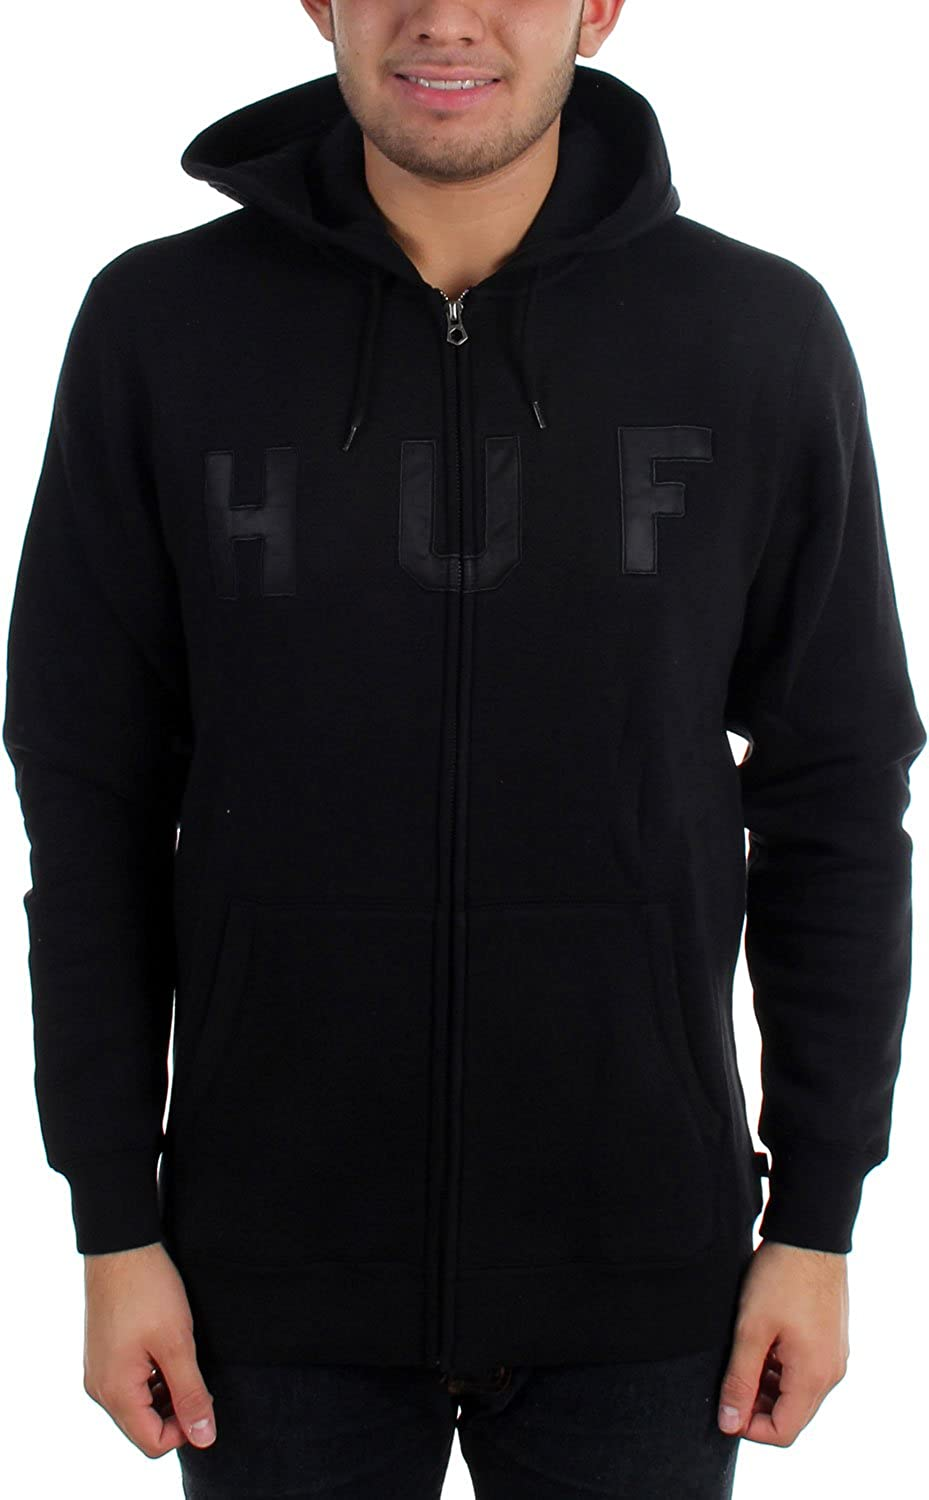 HUF Men's HUF Logo Zip Up Hoodie велосипед challenger agent lux 26 черно серый 18